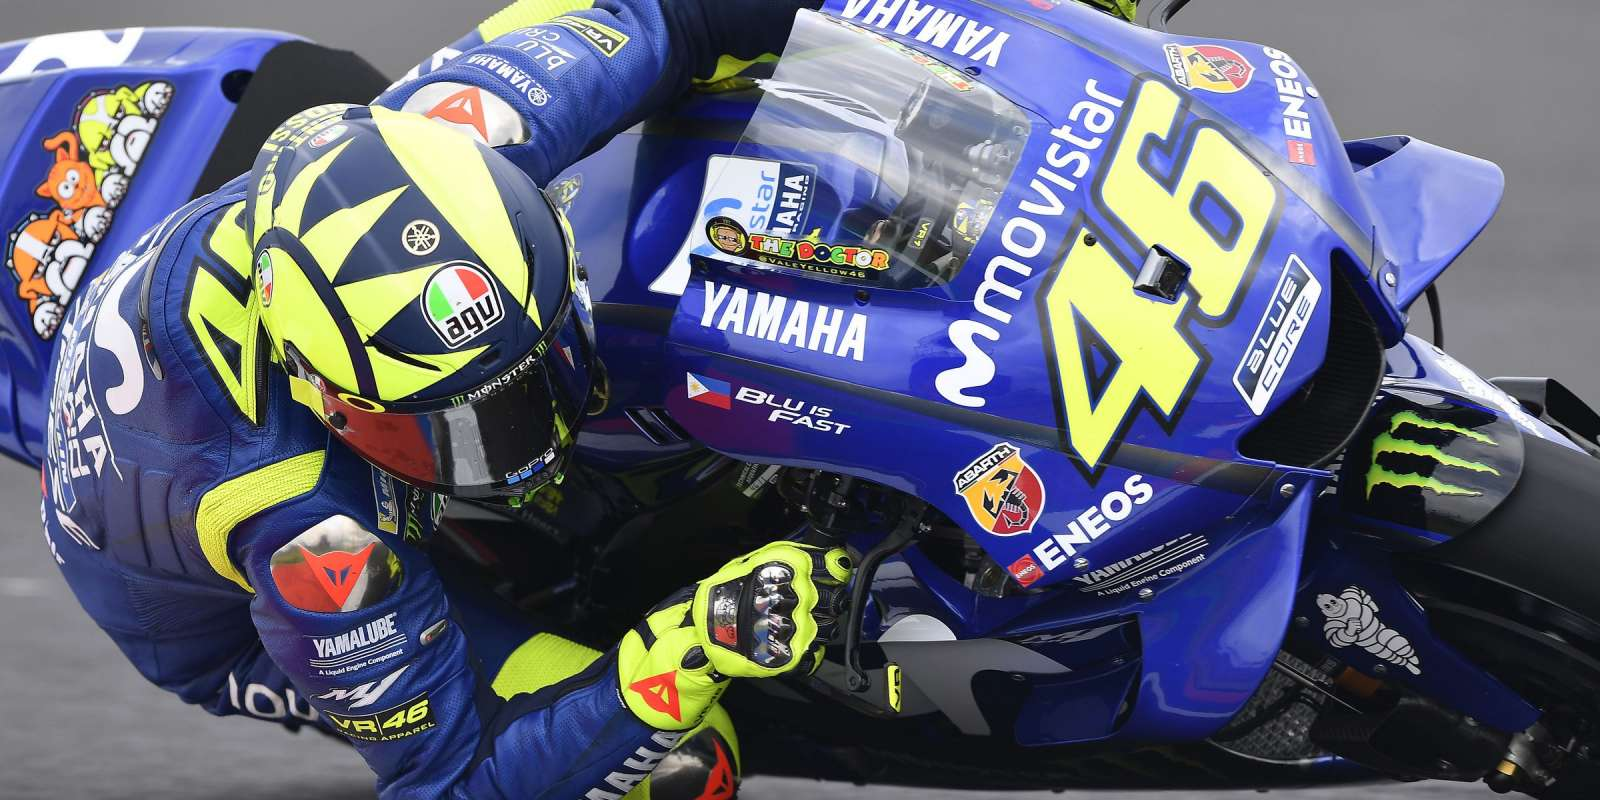 Valentino Rossi at the 2018 GP of Argentina